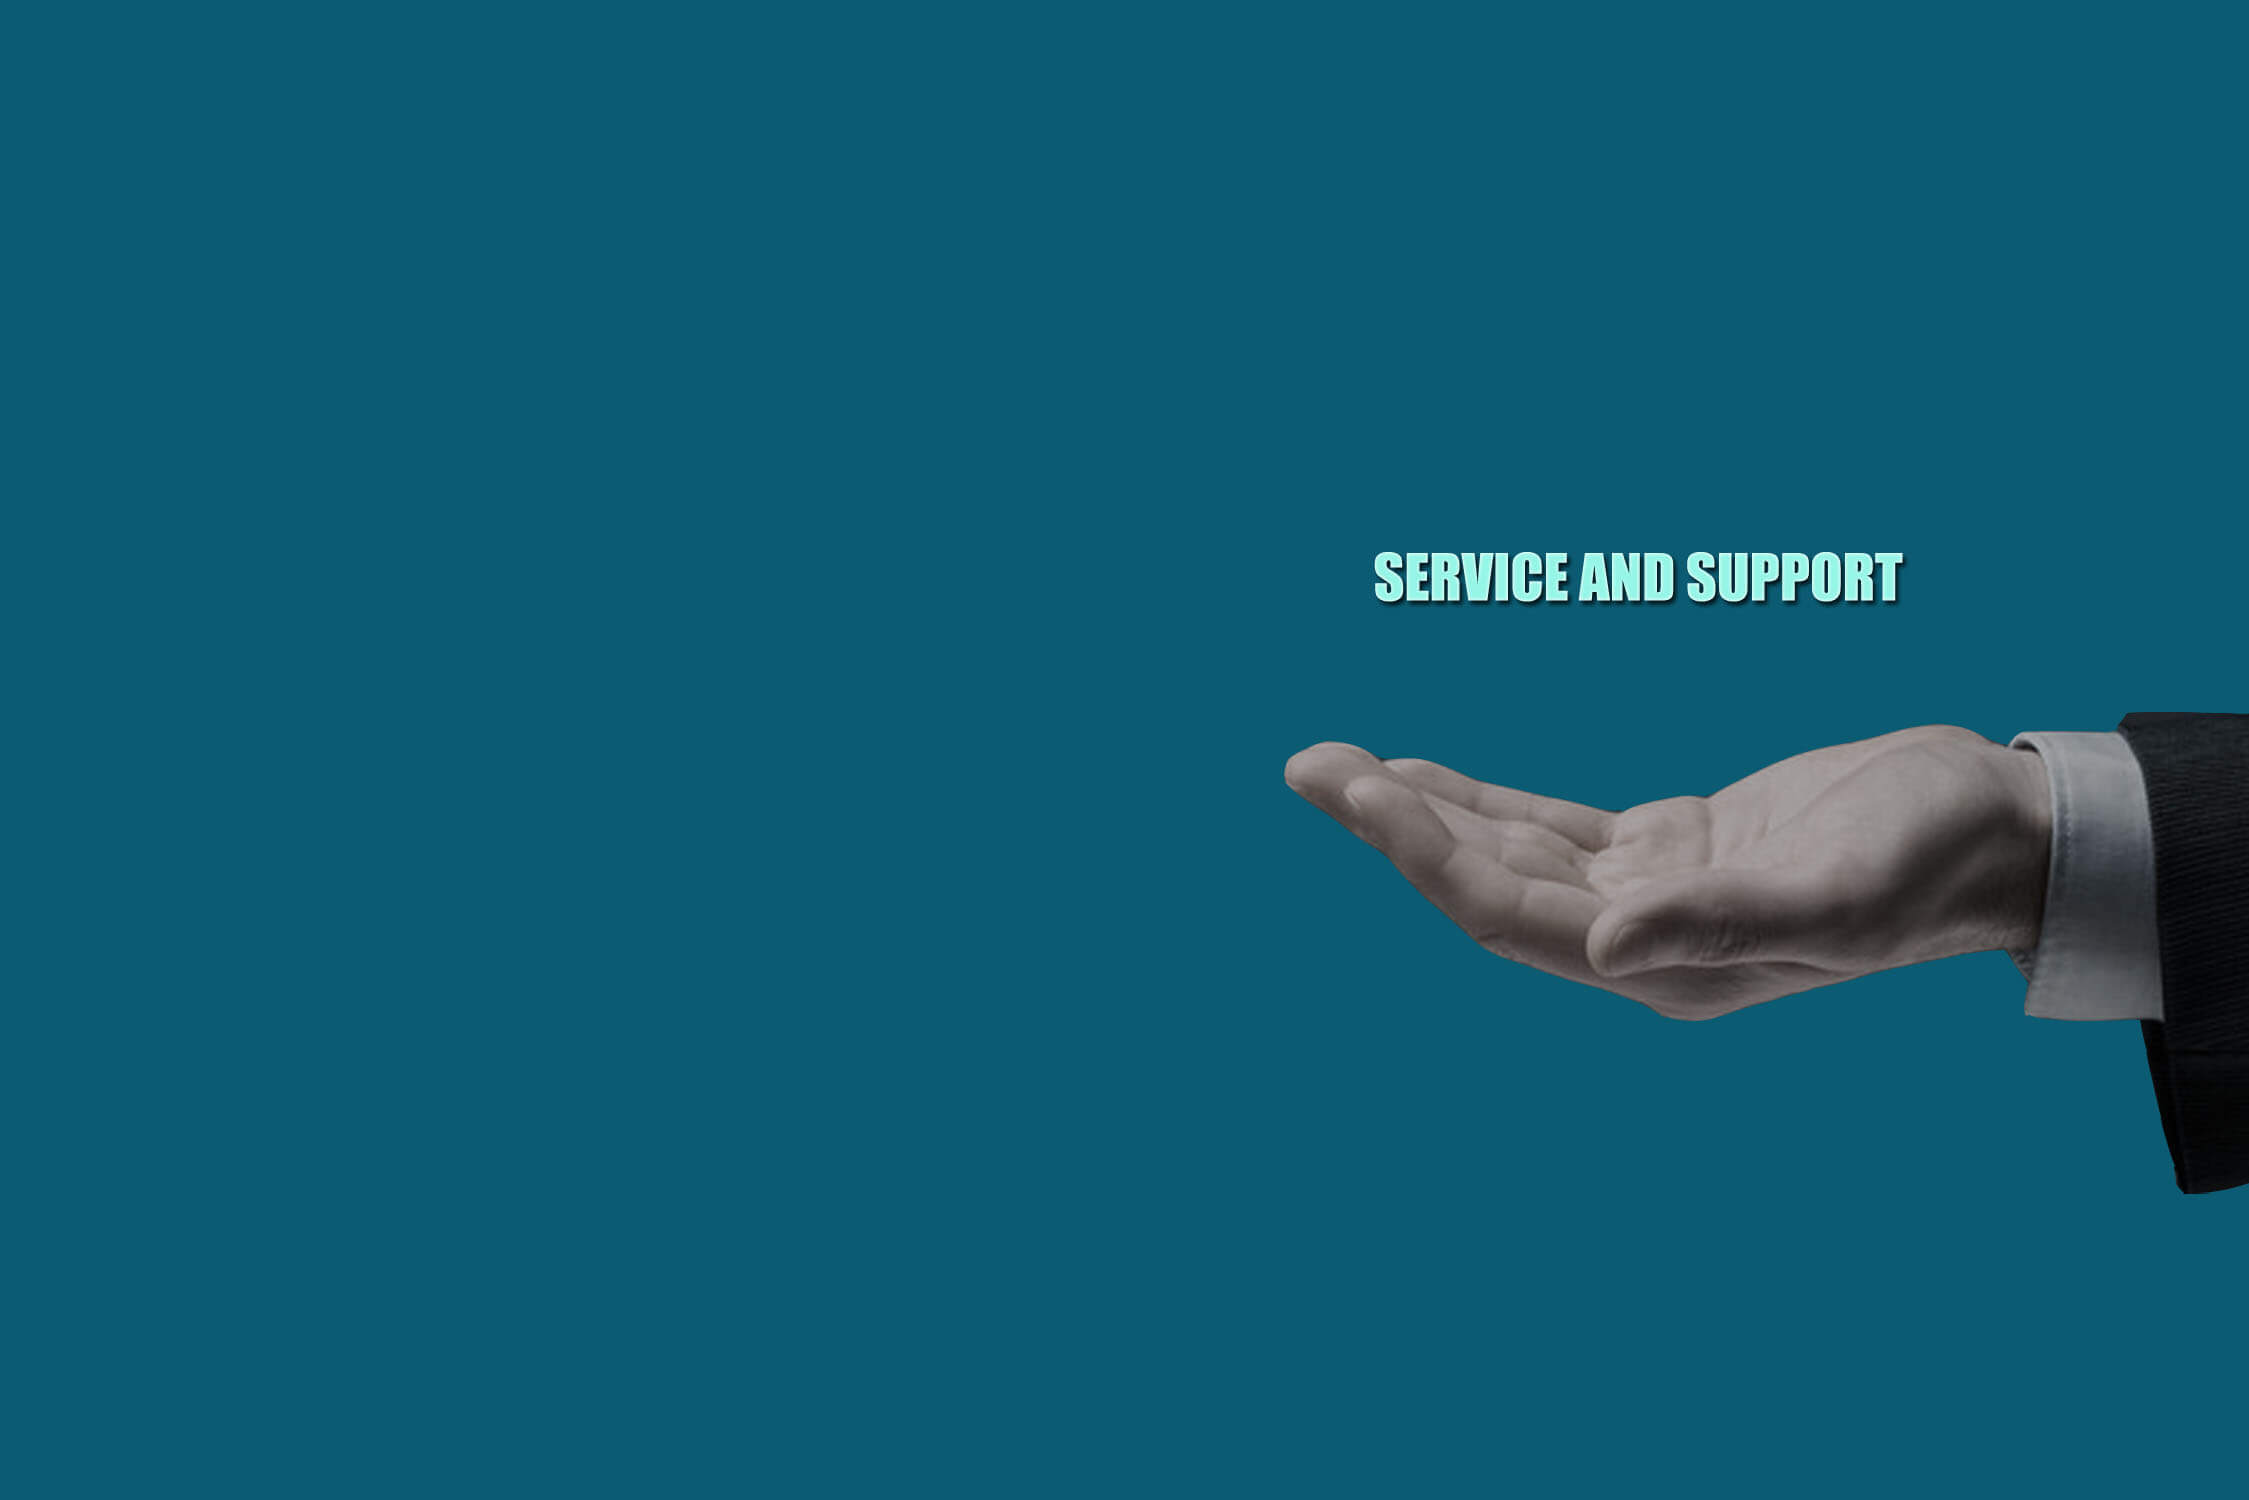 service-and-support